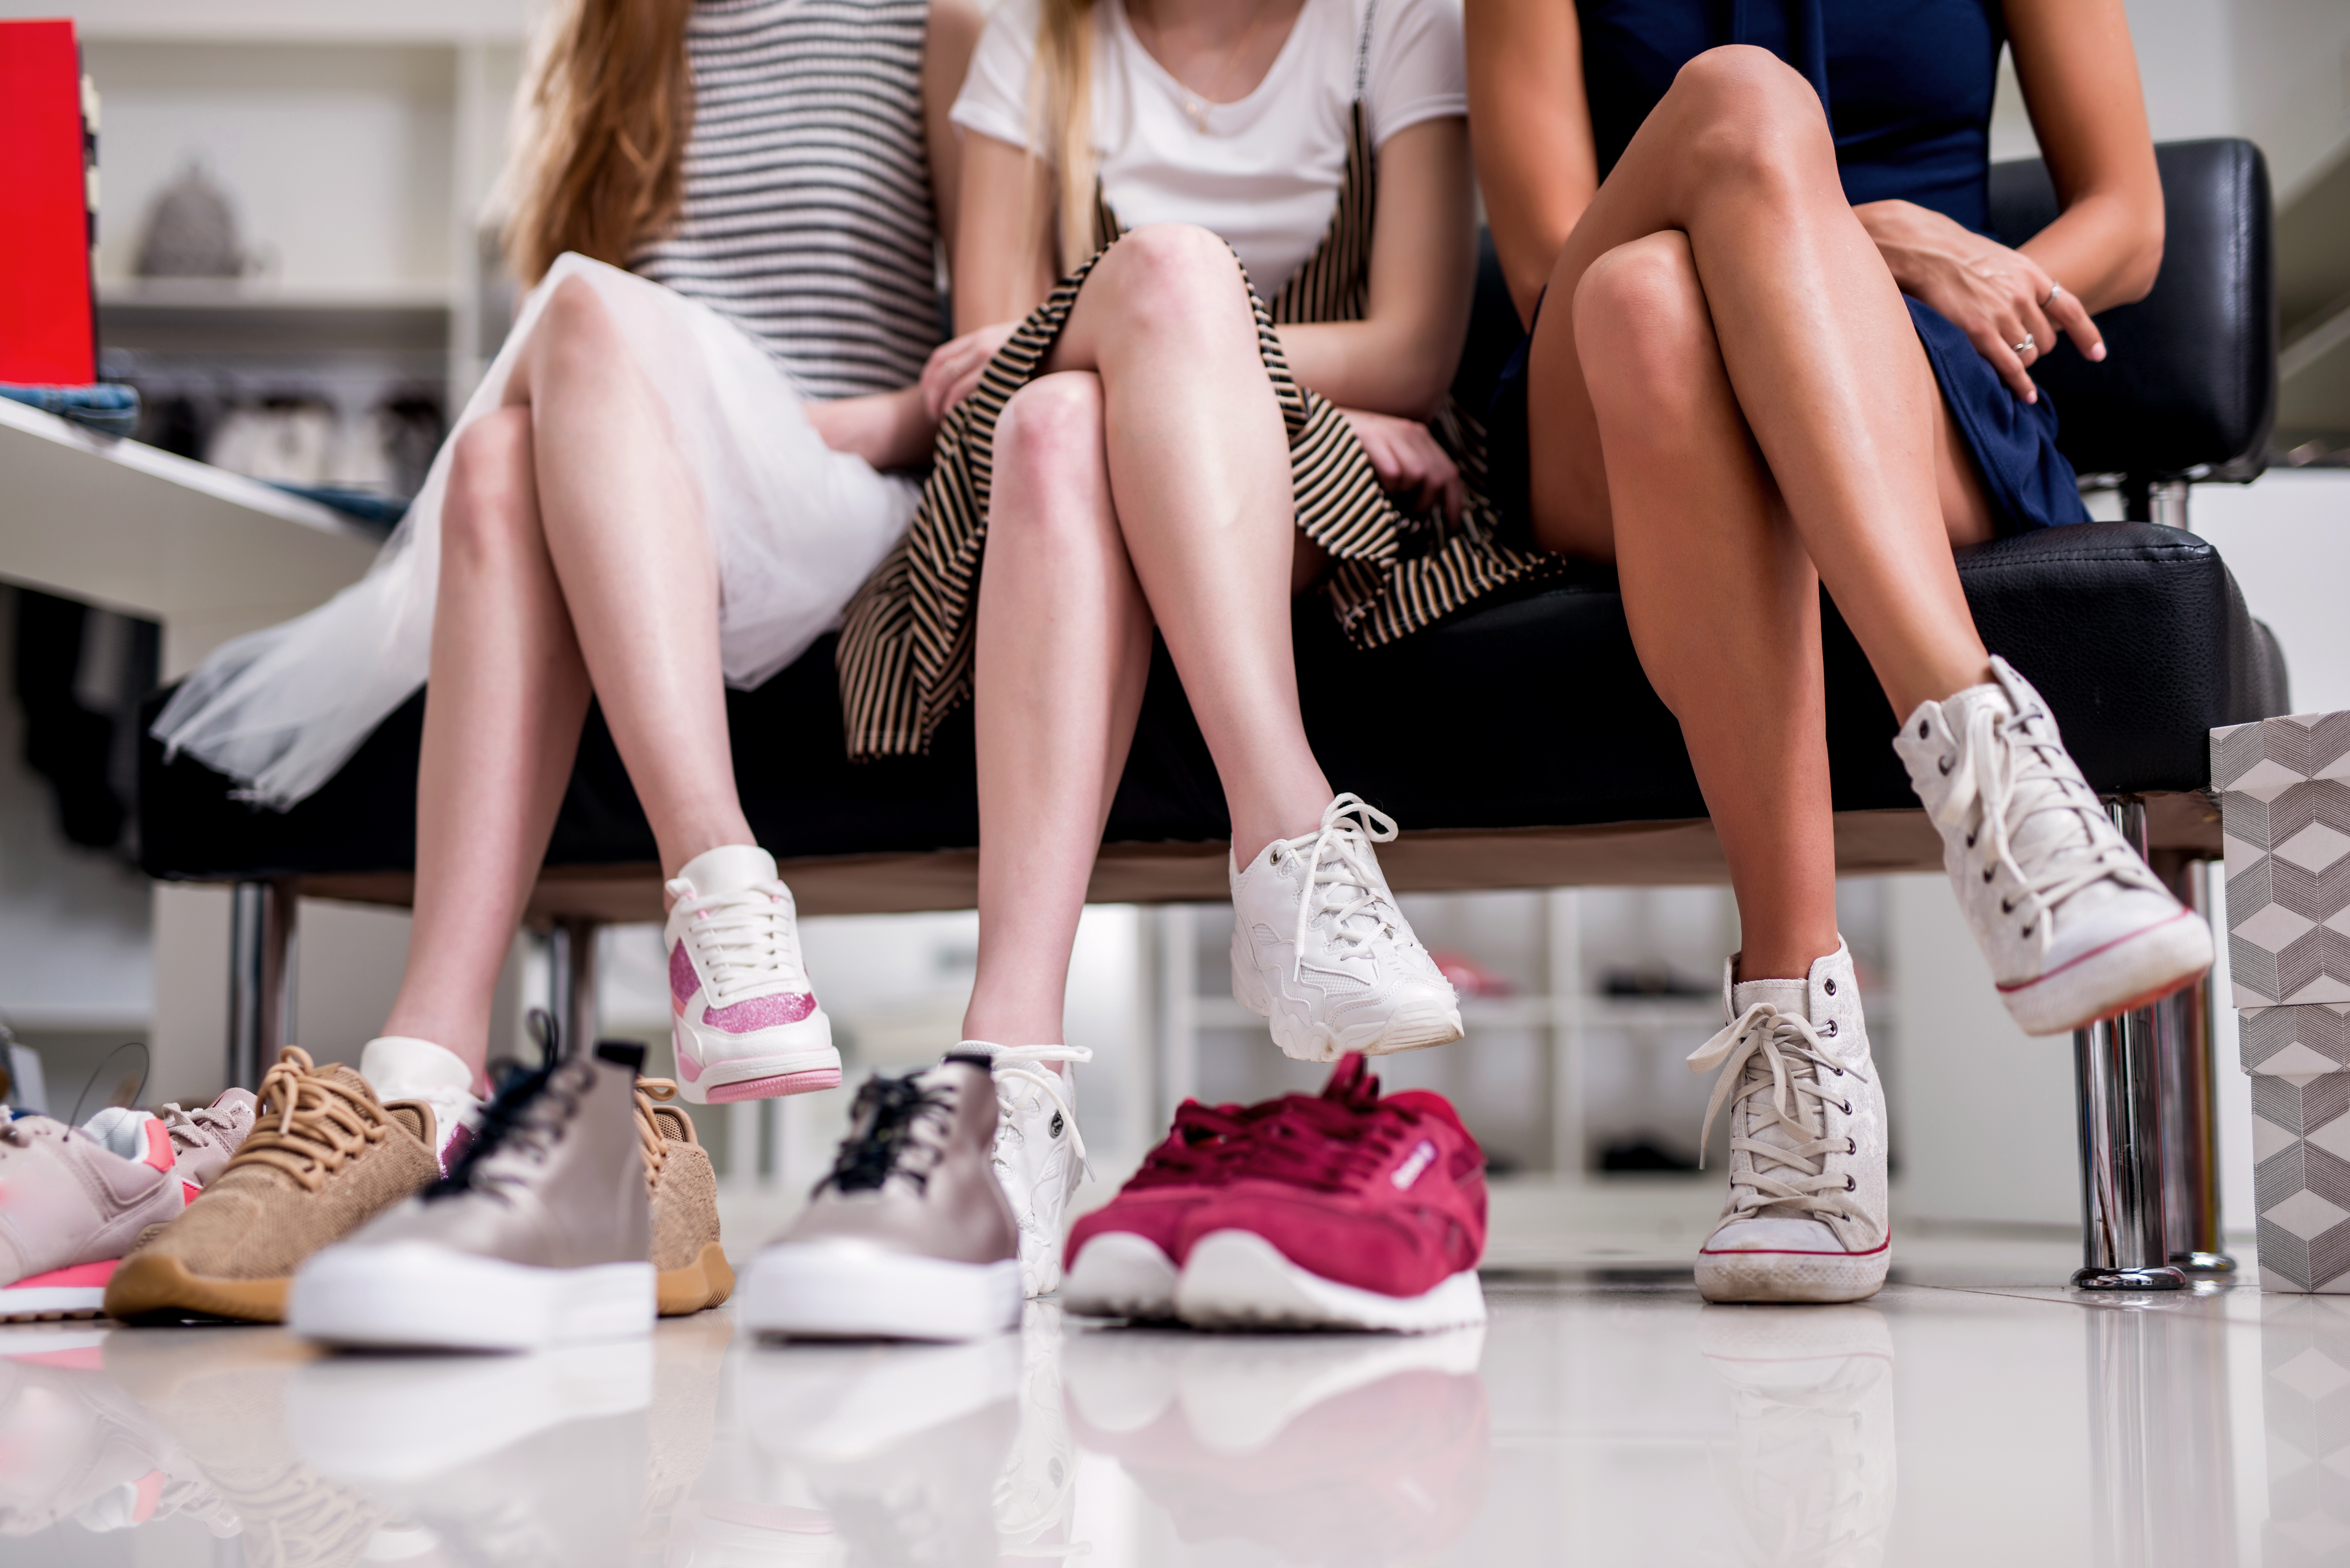 Close-up image of women sitting with legs crossed trying on new sneakers in shopping center.